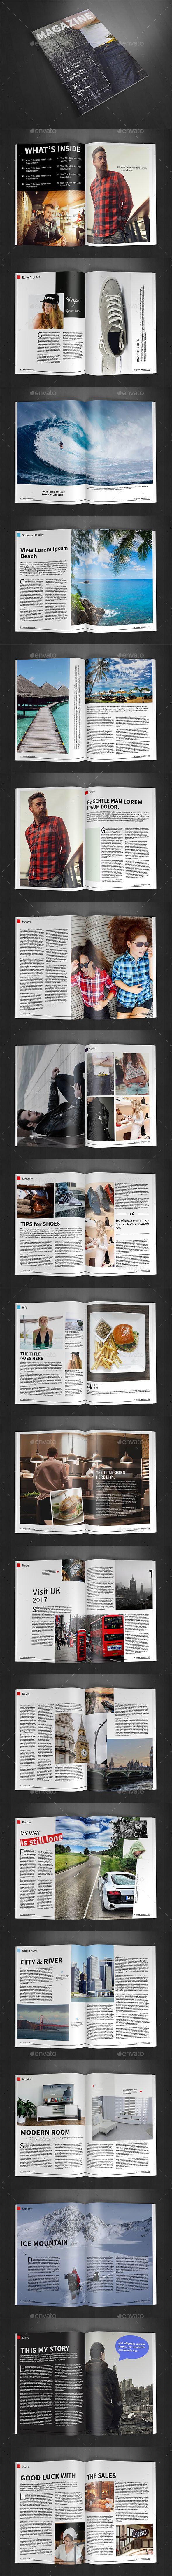 A4 Magazine Template Vol.24 - Magazines Print Templates